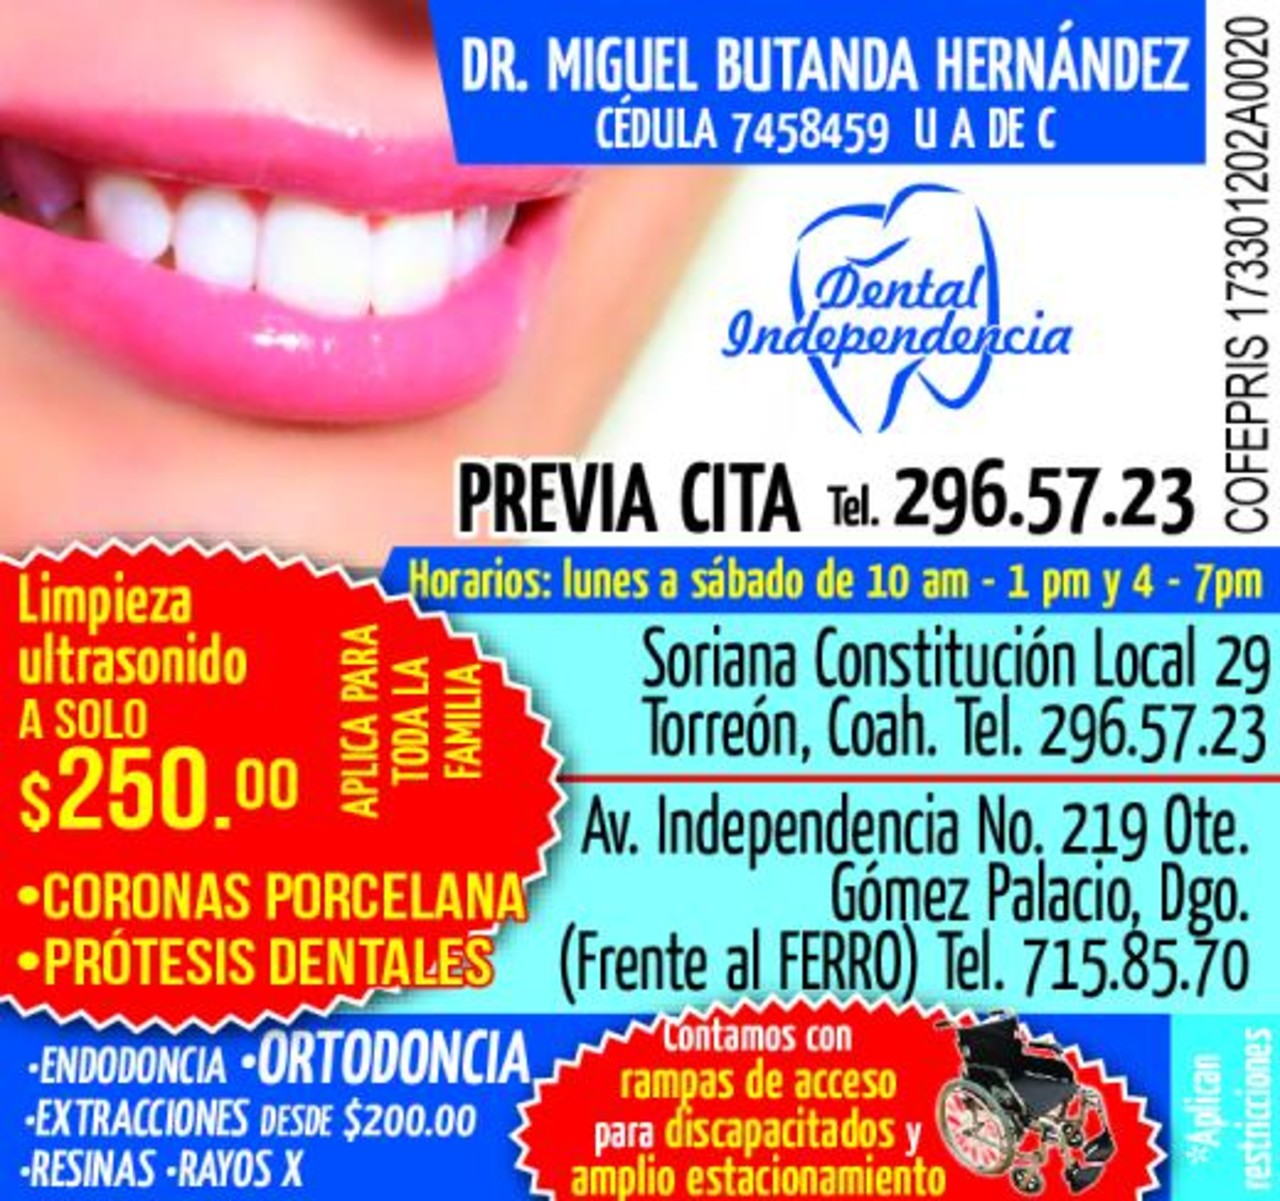 DENTAL INDEPENDENCIA torreon gomez lerdo laguna